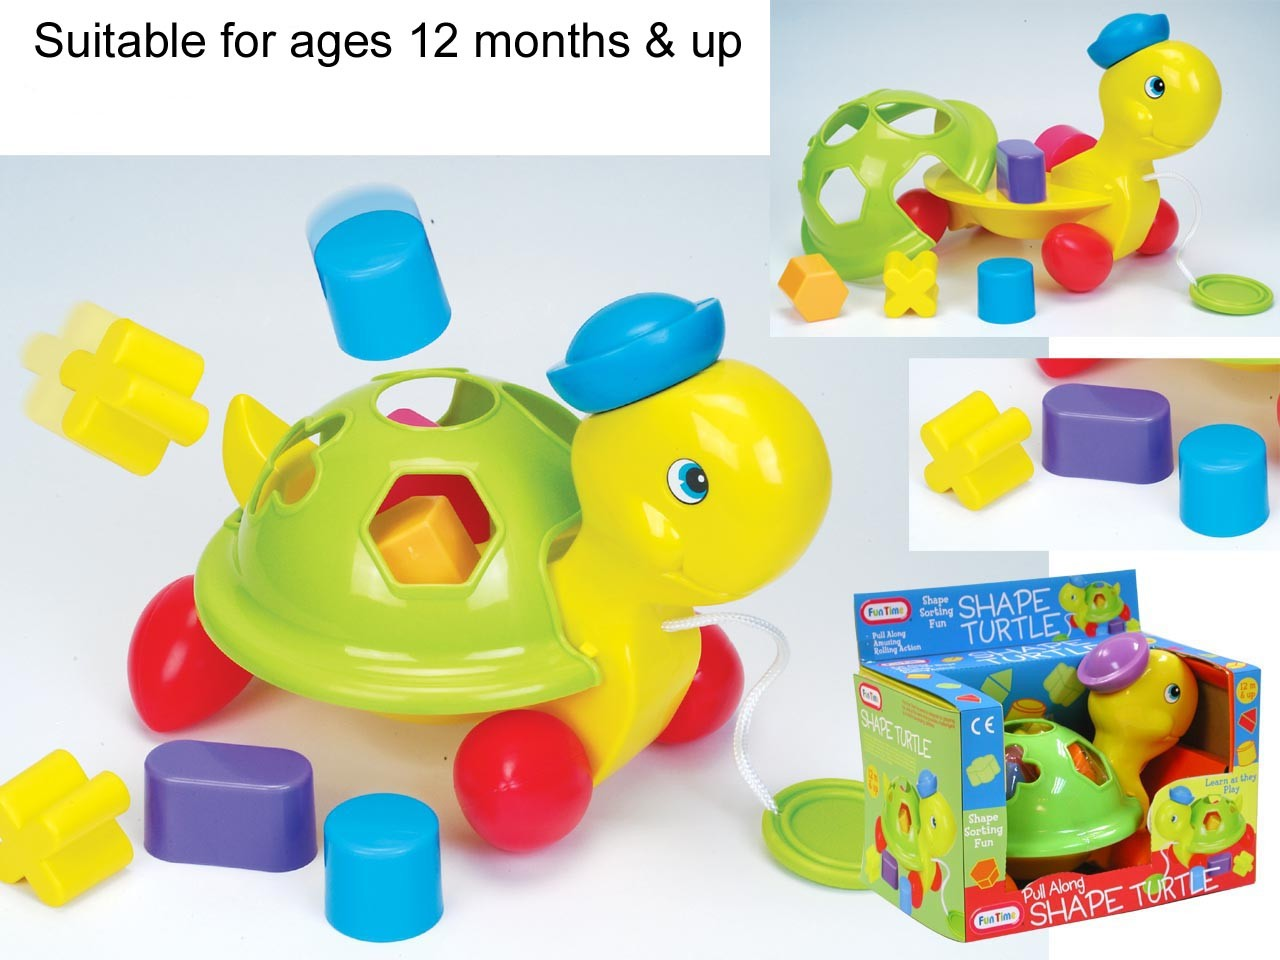 New Pull Along Shape Turtle Toy Activity Toys